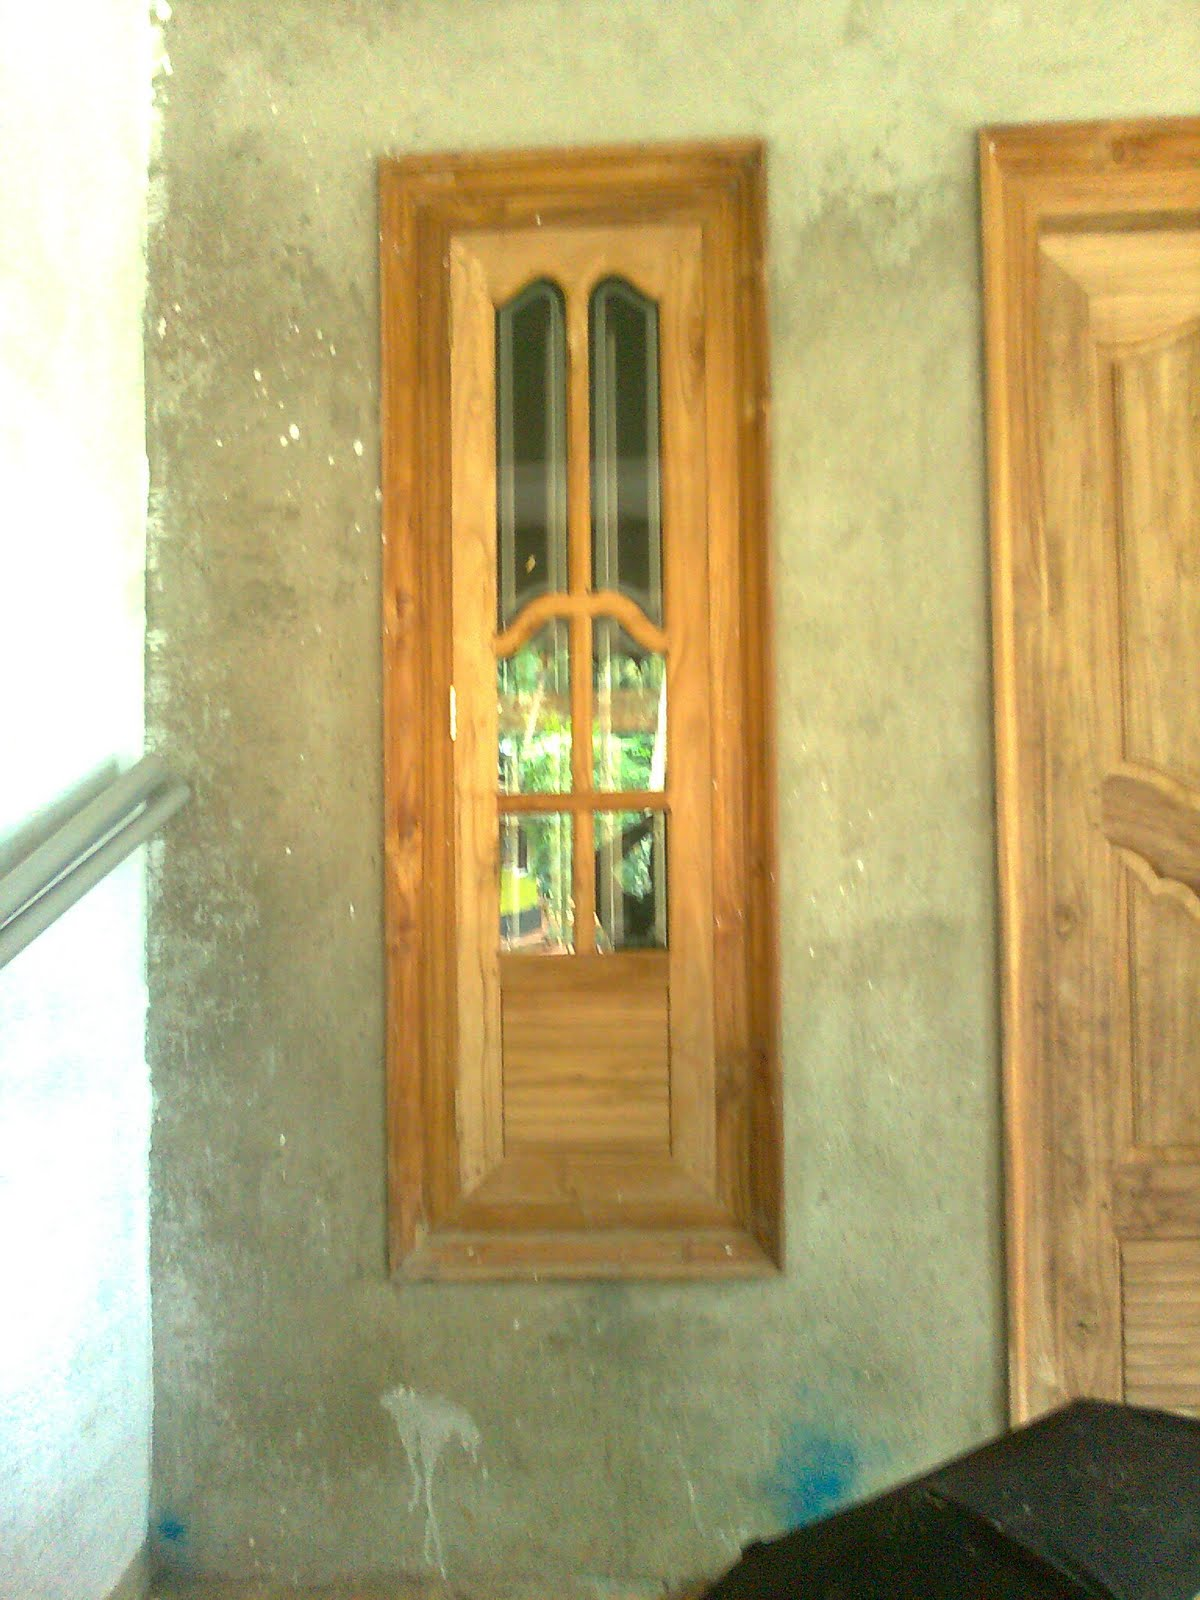 Bavas wood works wooden window doors simple designs for Latest window designs for house